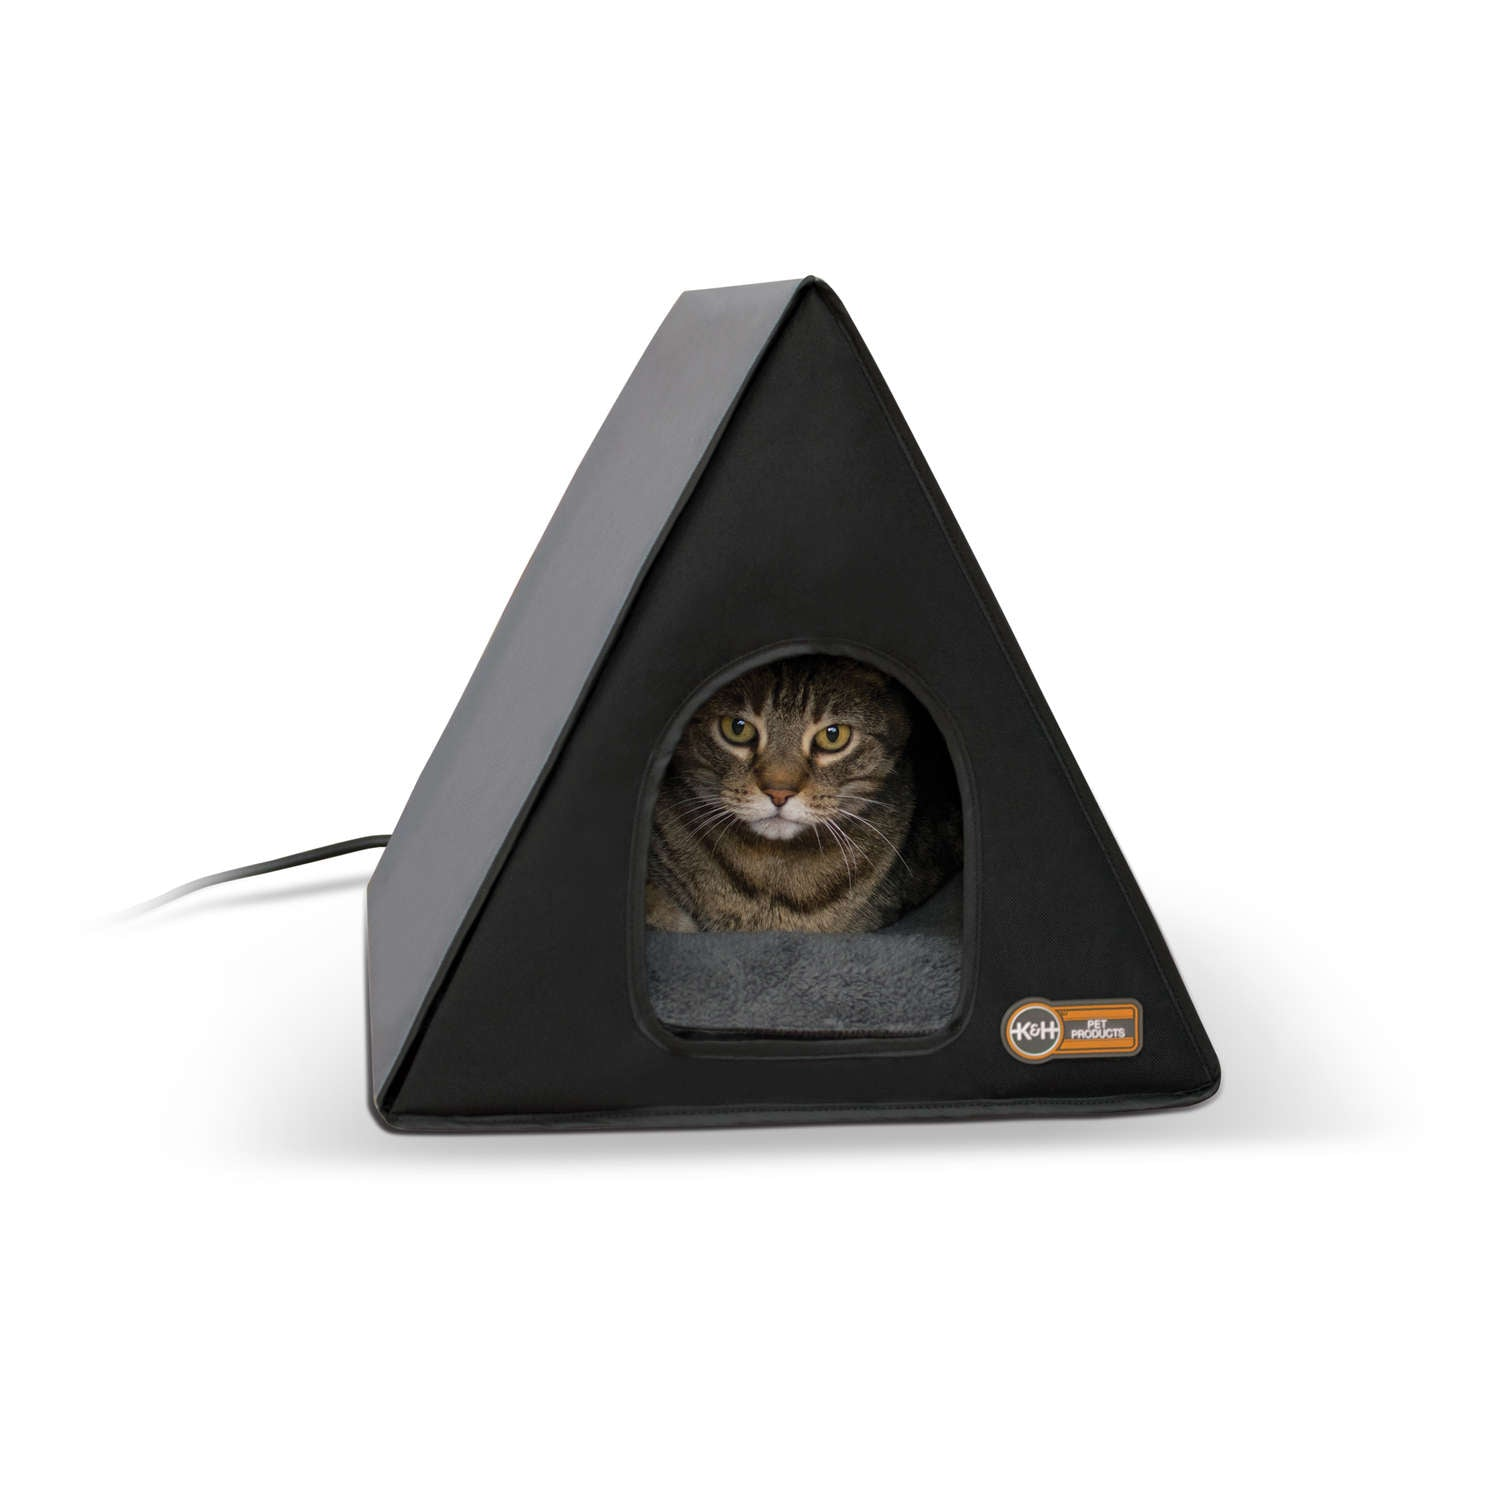 "K&H Pet Products Heated A-Frame Cat House Gray / Black 18"" x 14"" x 14"" Cat Houses - London the Local"